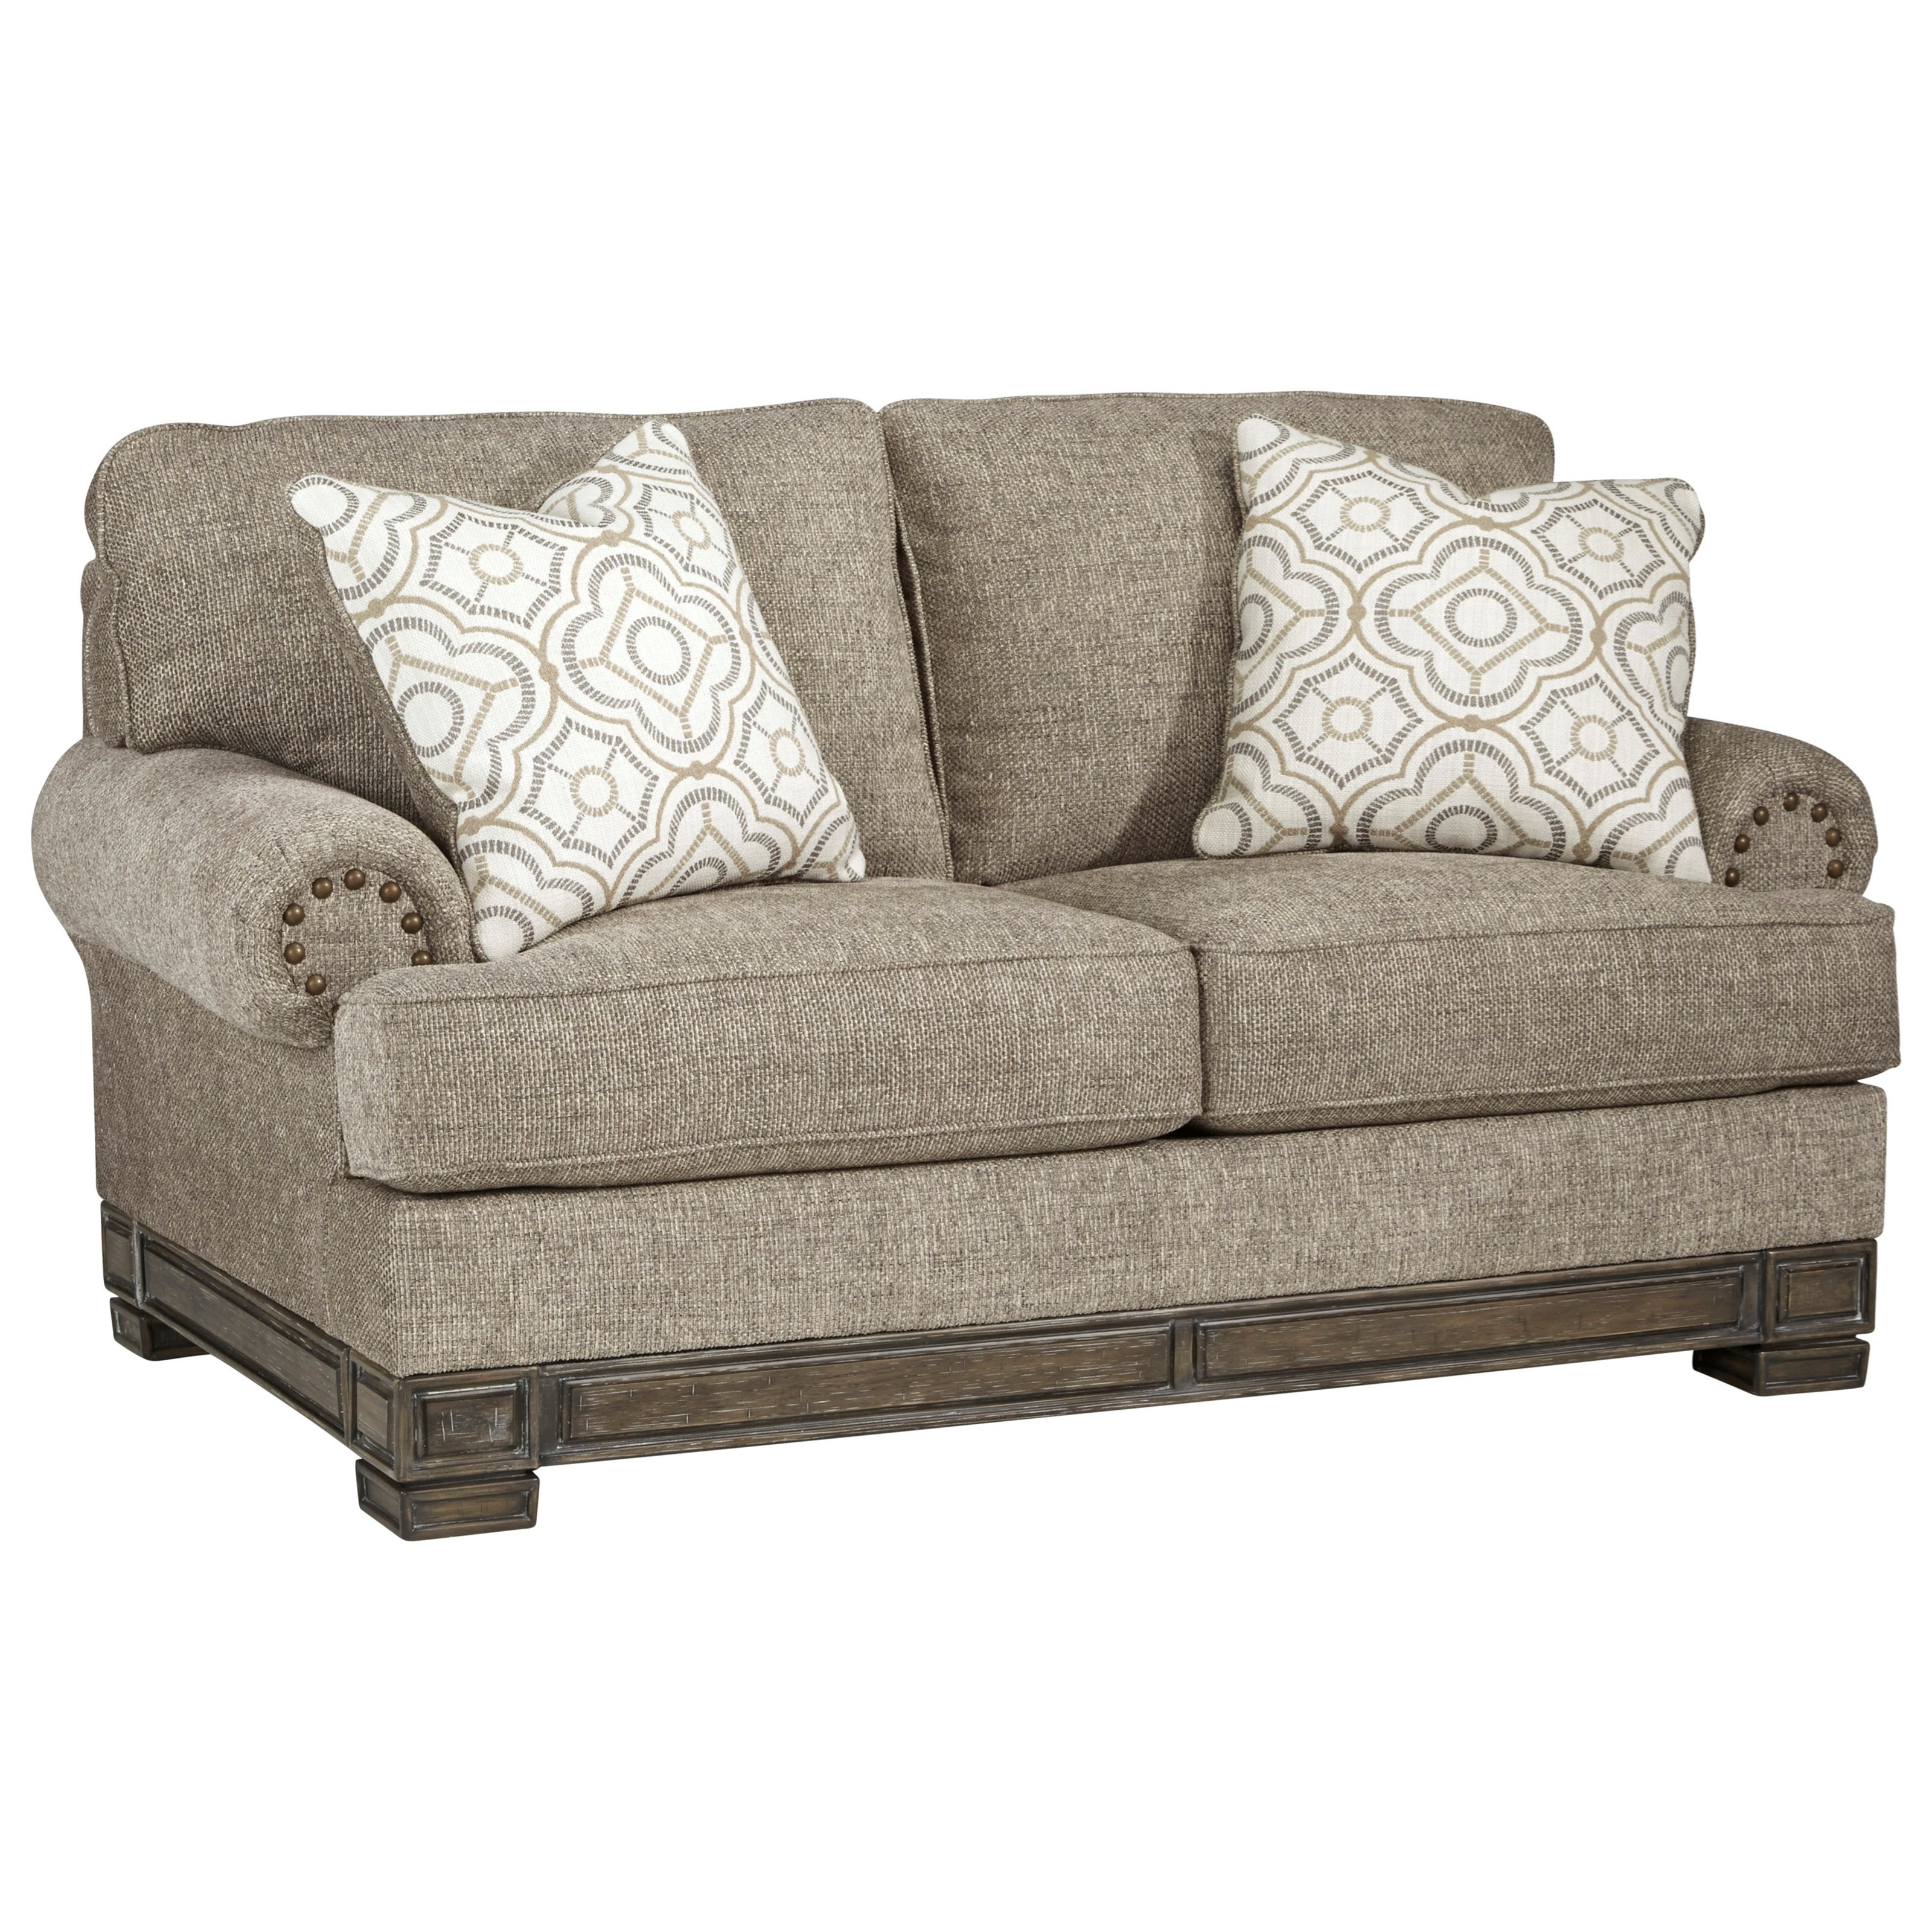 Einsgrove Loveseat by Ashley (Signature Design) at Johnny Janosik